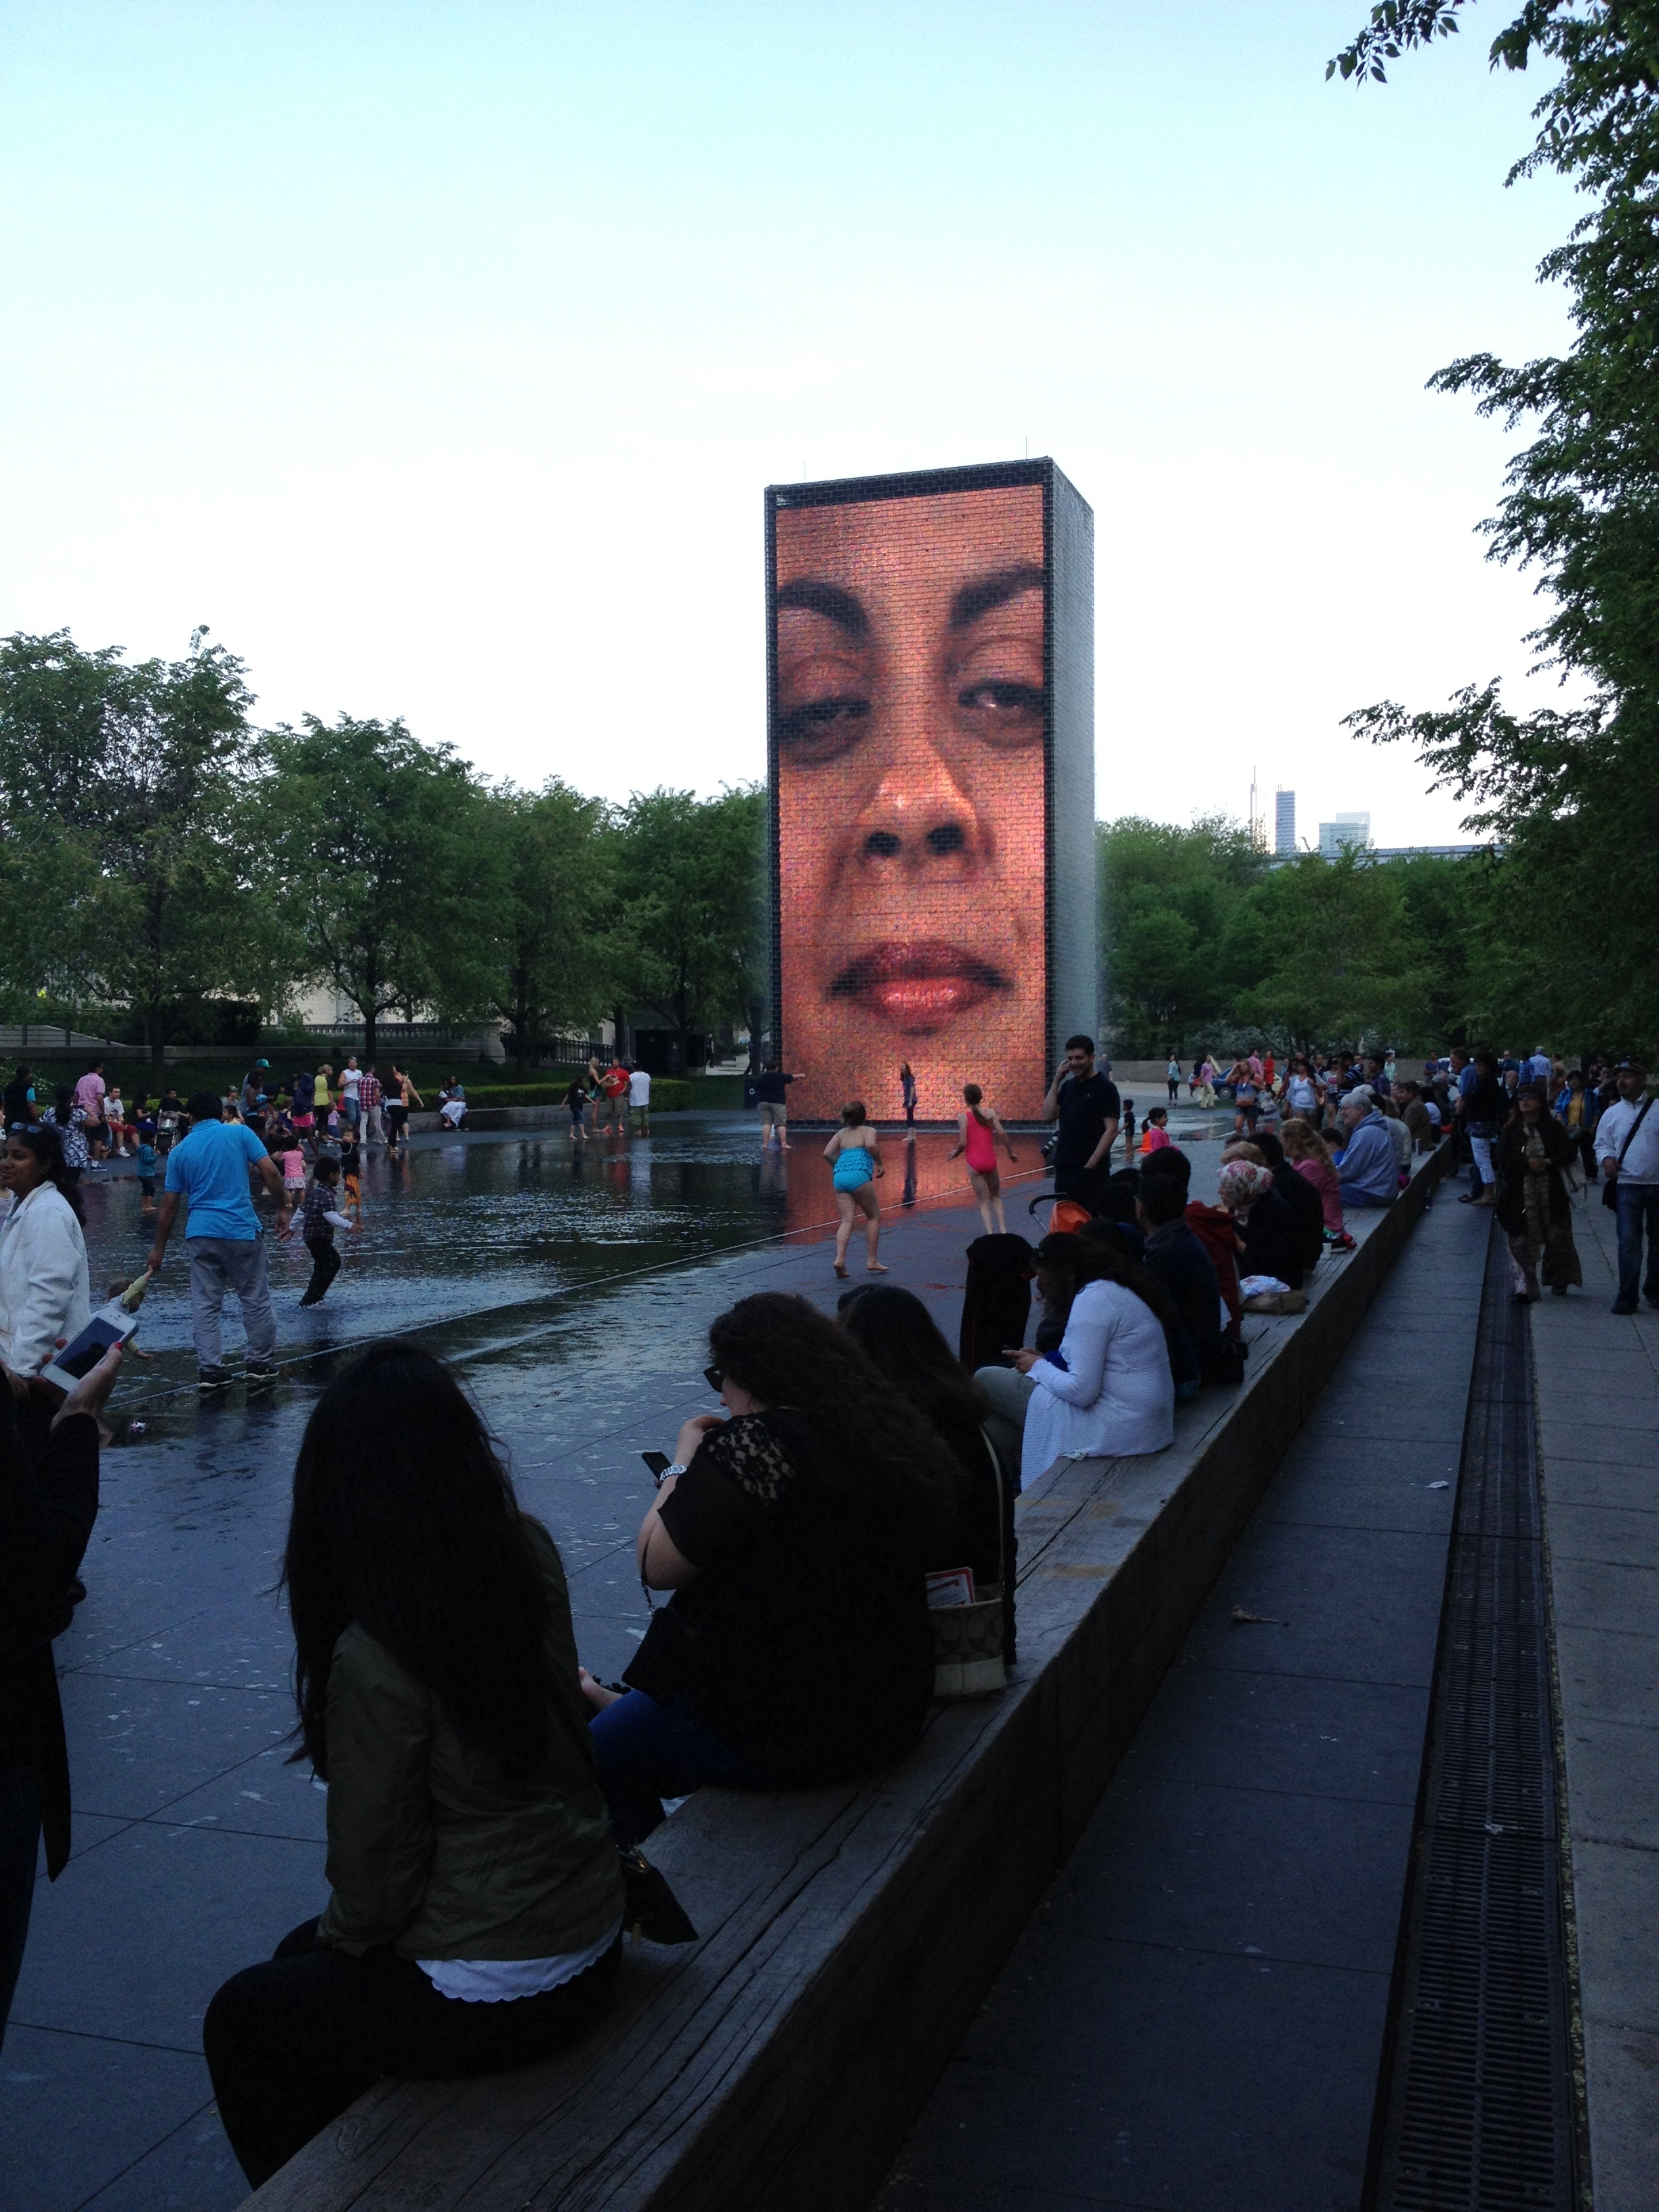 Plensa's Crown Fountain sculpture even at dusk attracts hundreds of people to interact with it.